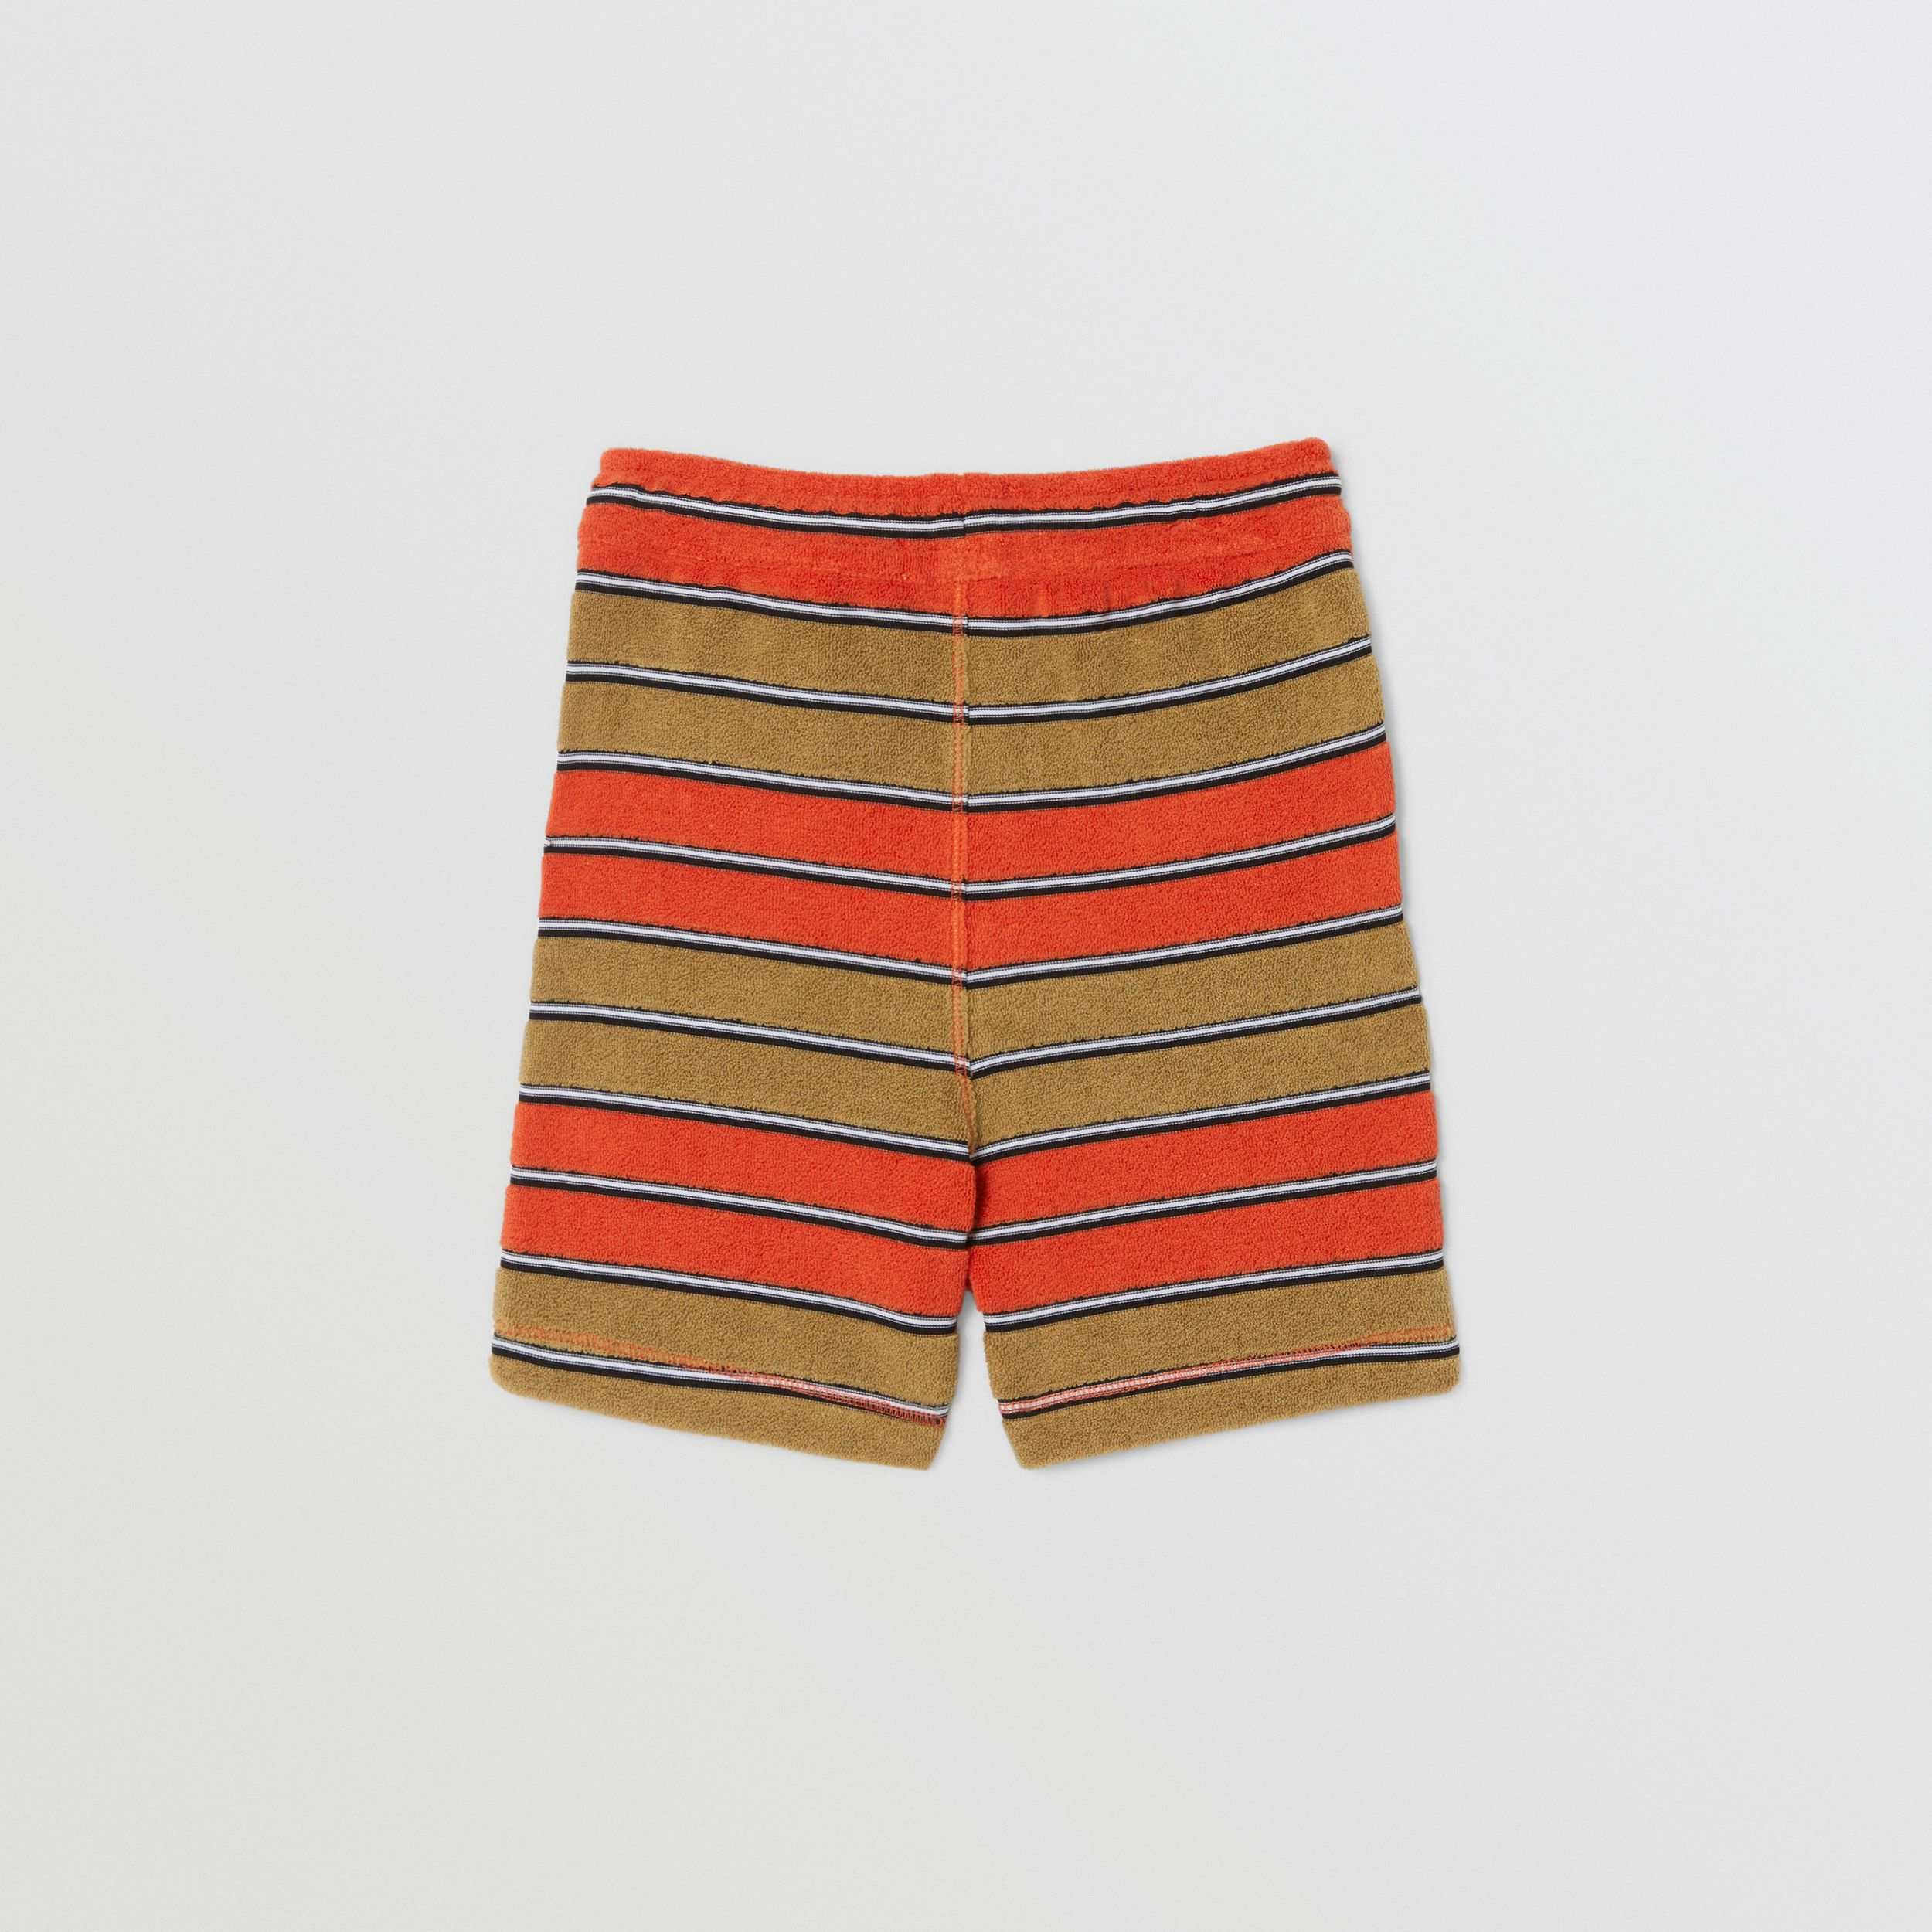 Logo Appliqué Striped Towelling Shorts in Vermilion Red - Children | Burberry - 4